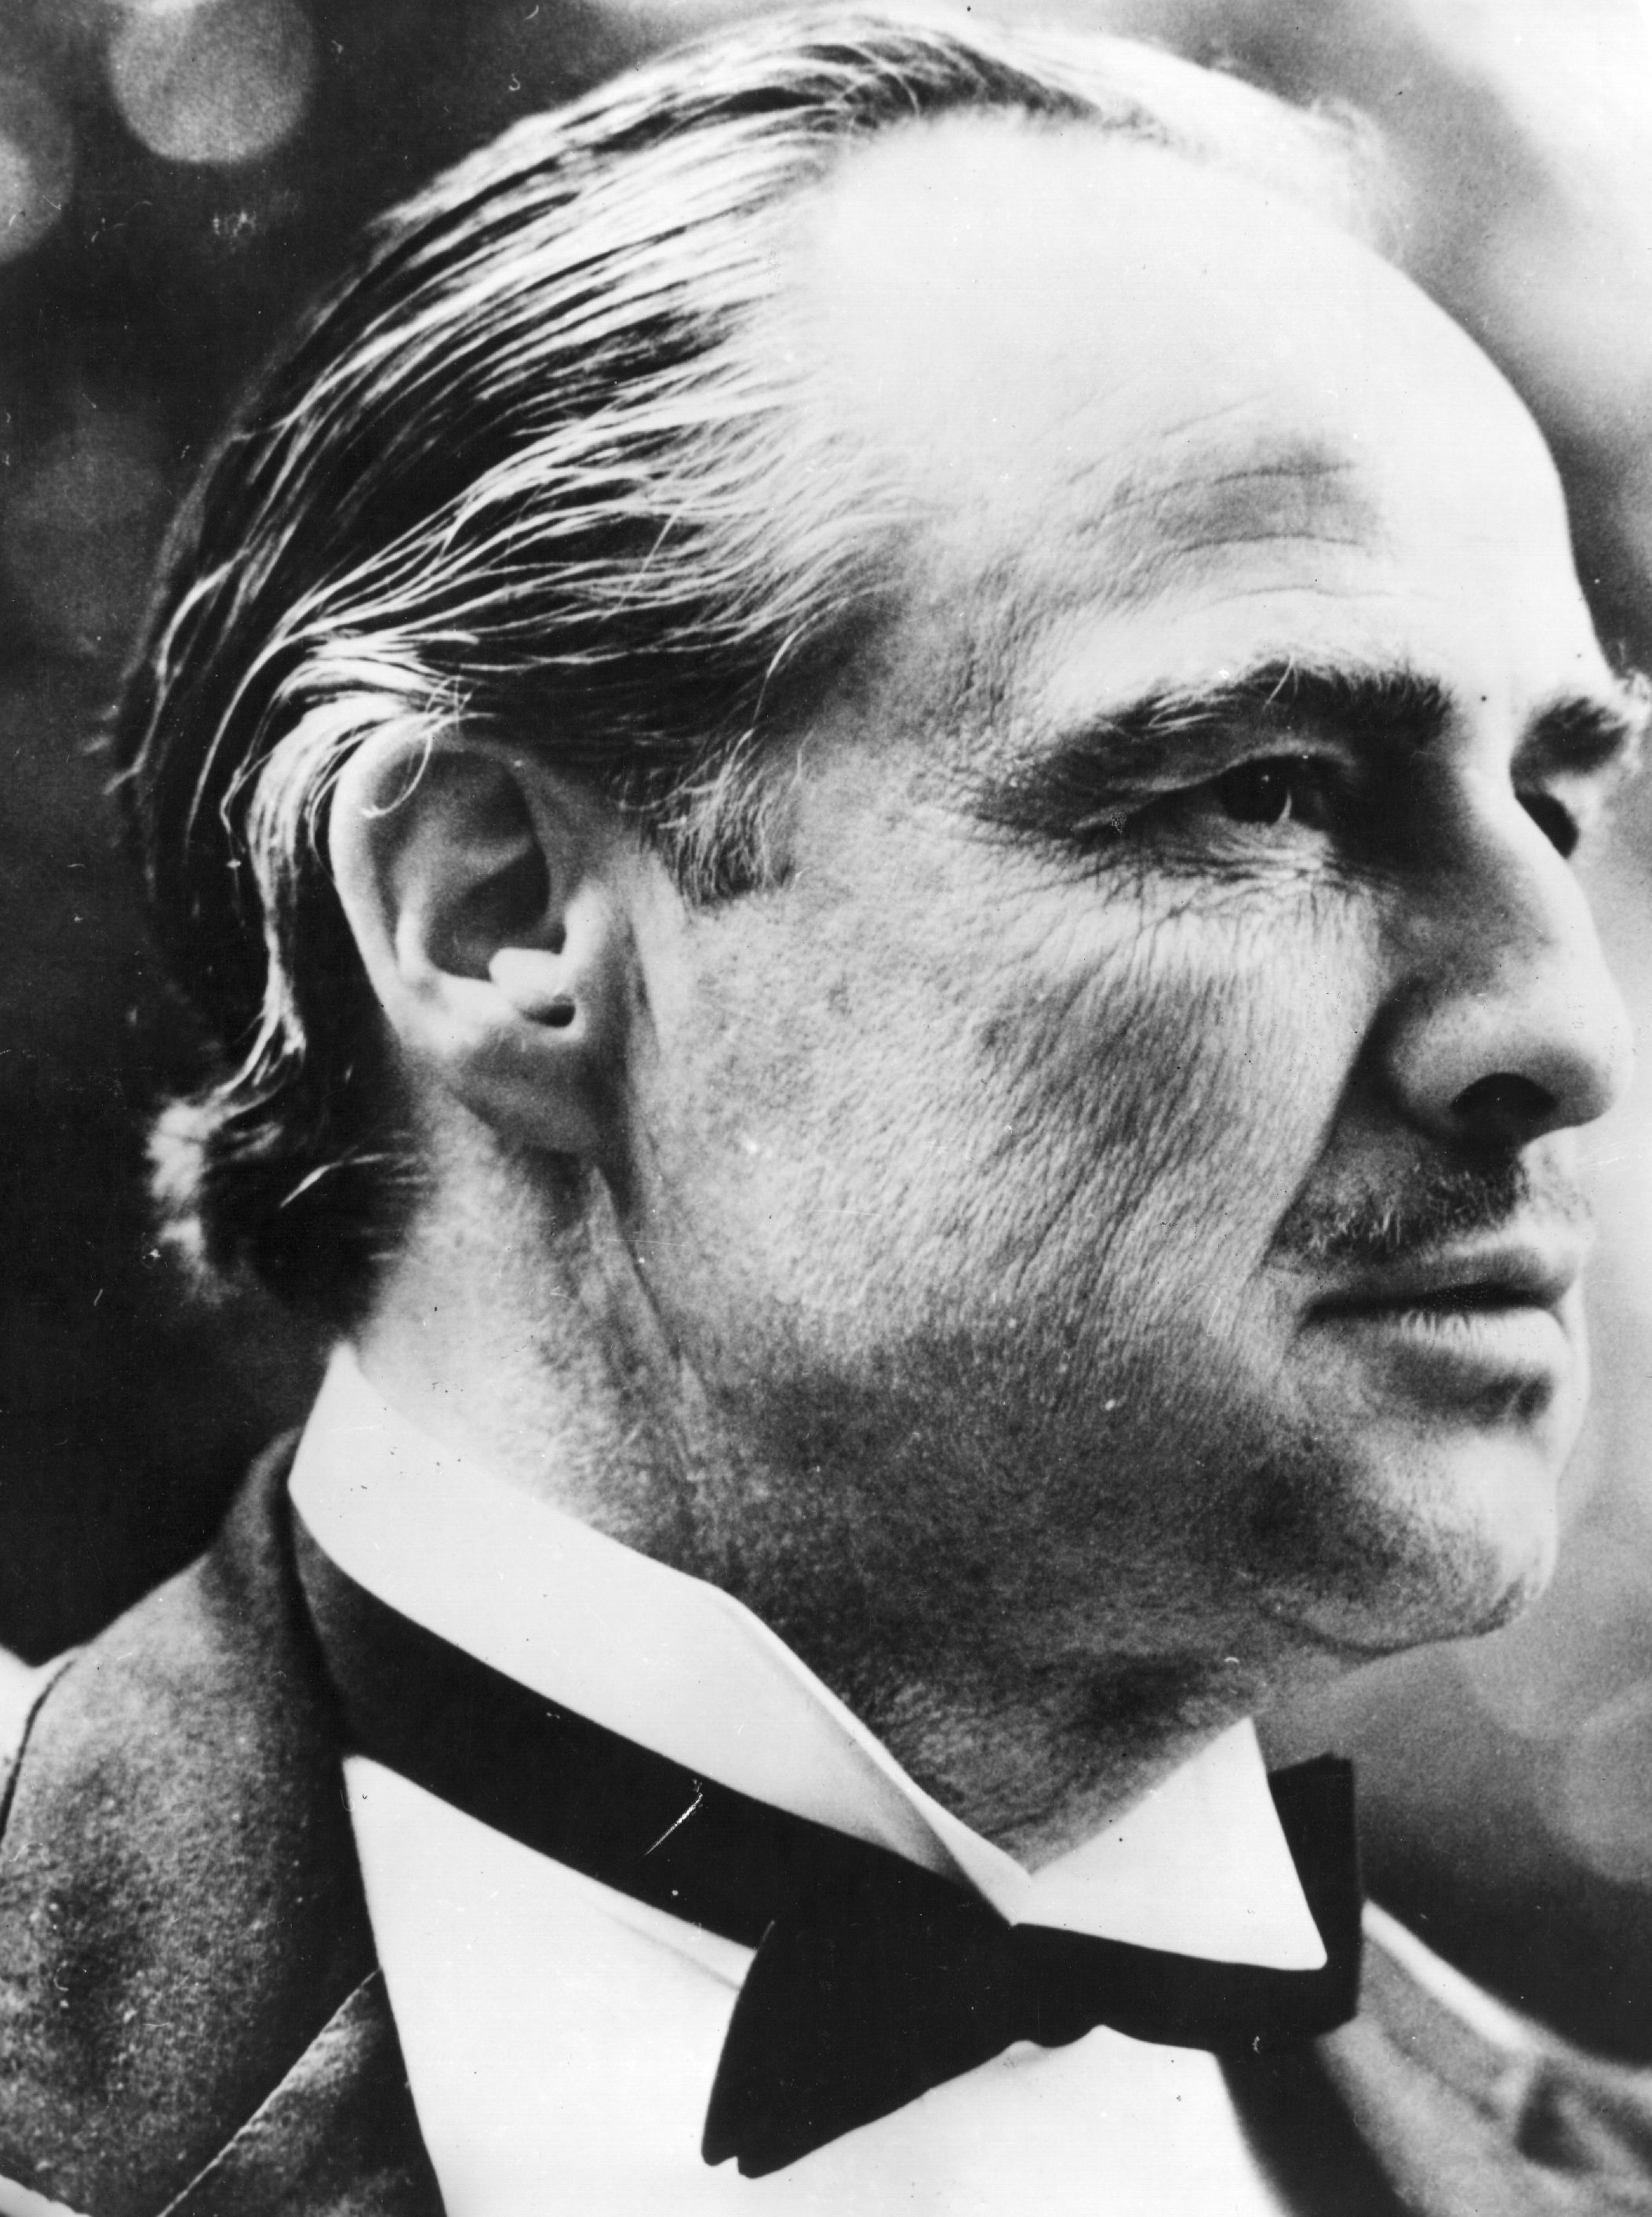 1972: American actor Marlon Brando as Don Corleone in 'The Godfather,' directed by Francis Ford Coppola for Paramount. (Photo by Central Press/Getty Images)